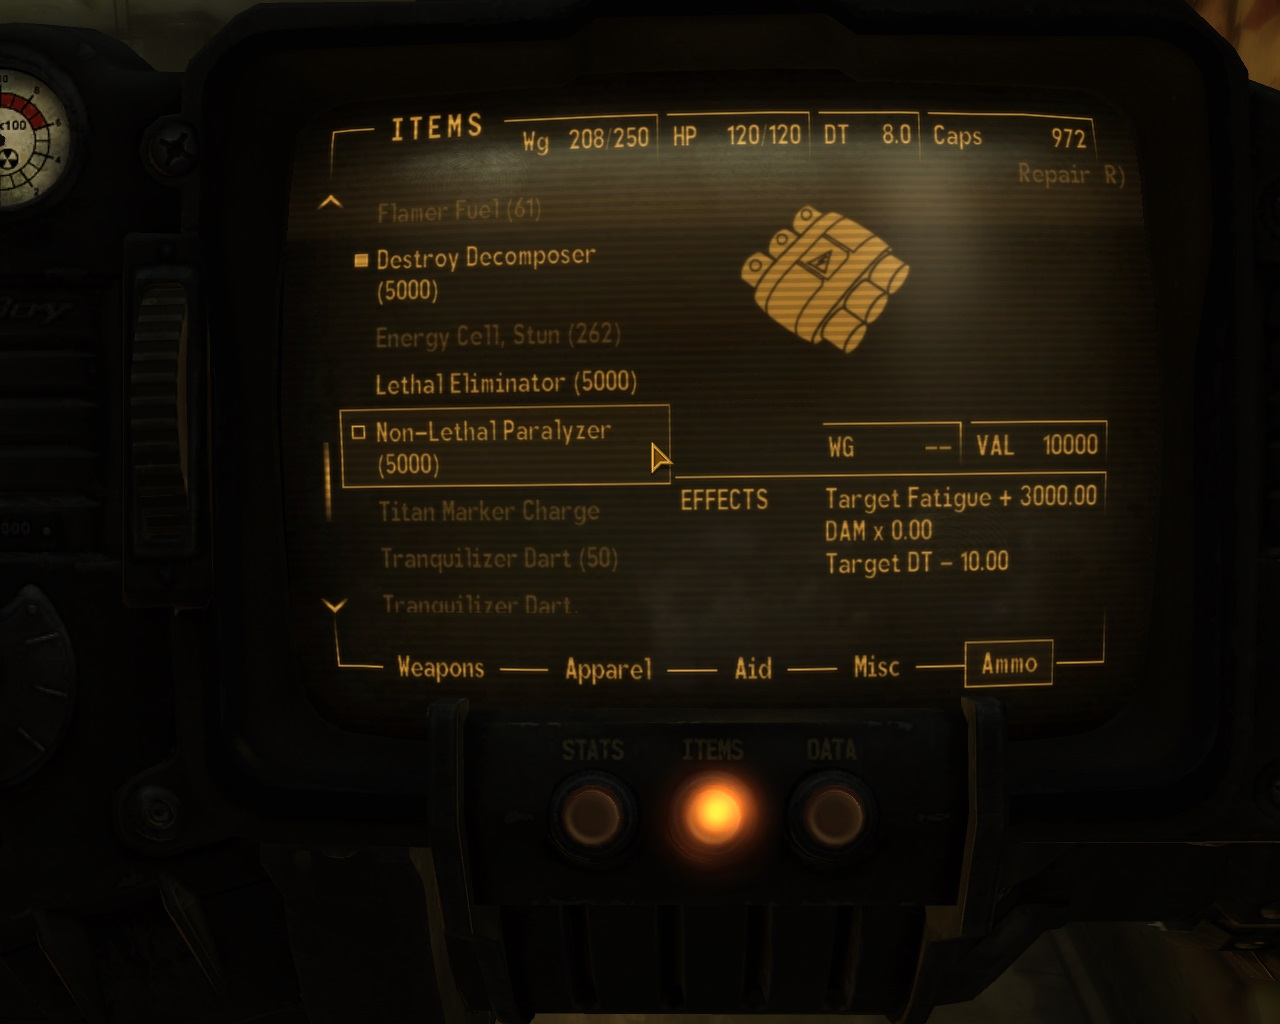 Psycho Pass Dominator At Fallout New Vegas Mods And Community